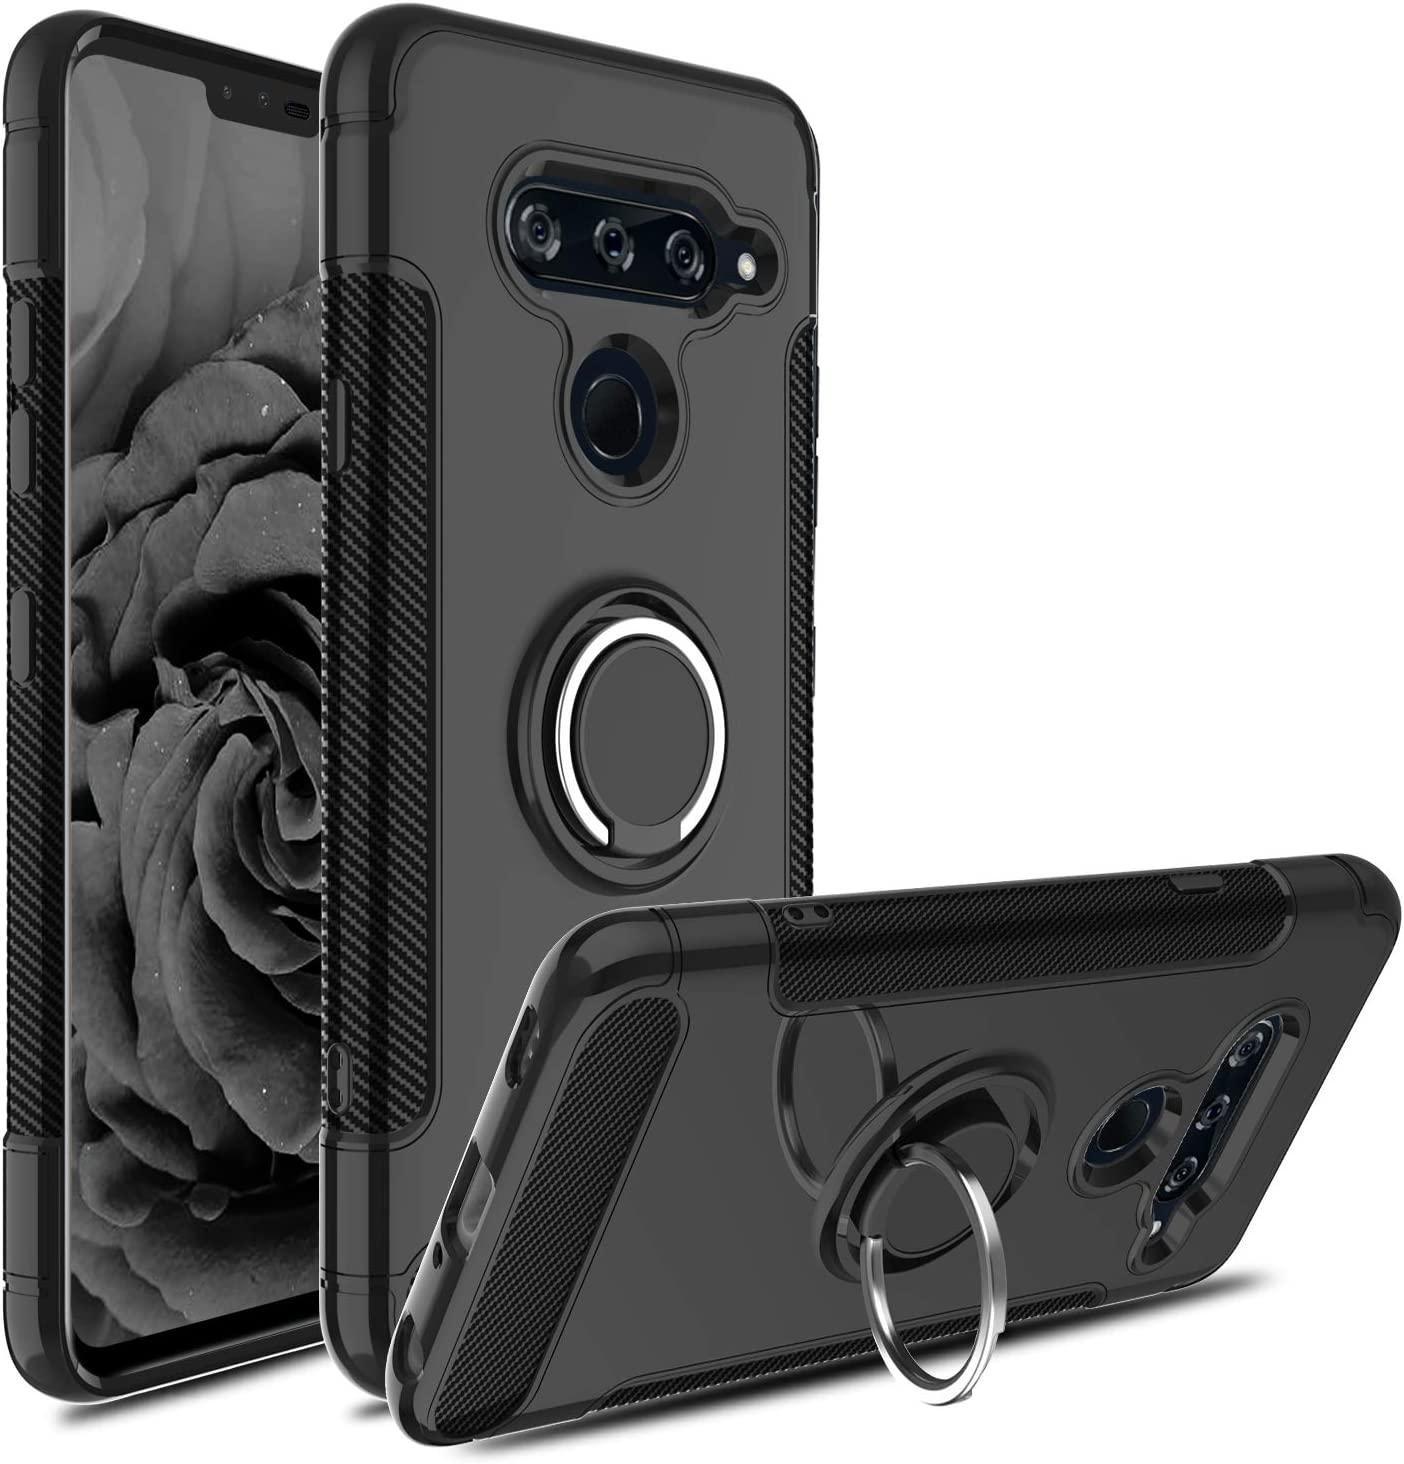 LG V40 Case, LG V40 Thinq Case, Hybrid Dual Layer 360 Degree Rotating Ring Holder Kickstand Case with Magnetic Car Mount Cover-Black